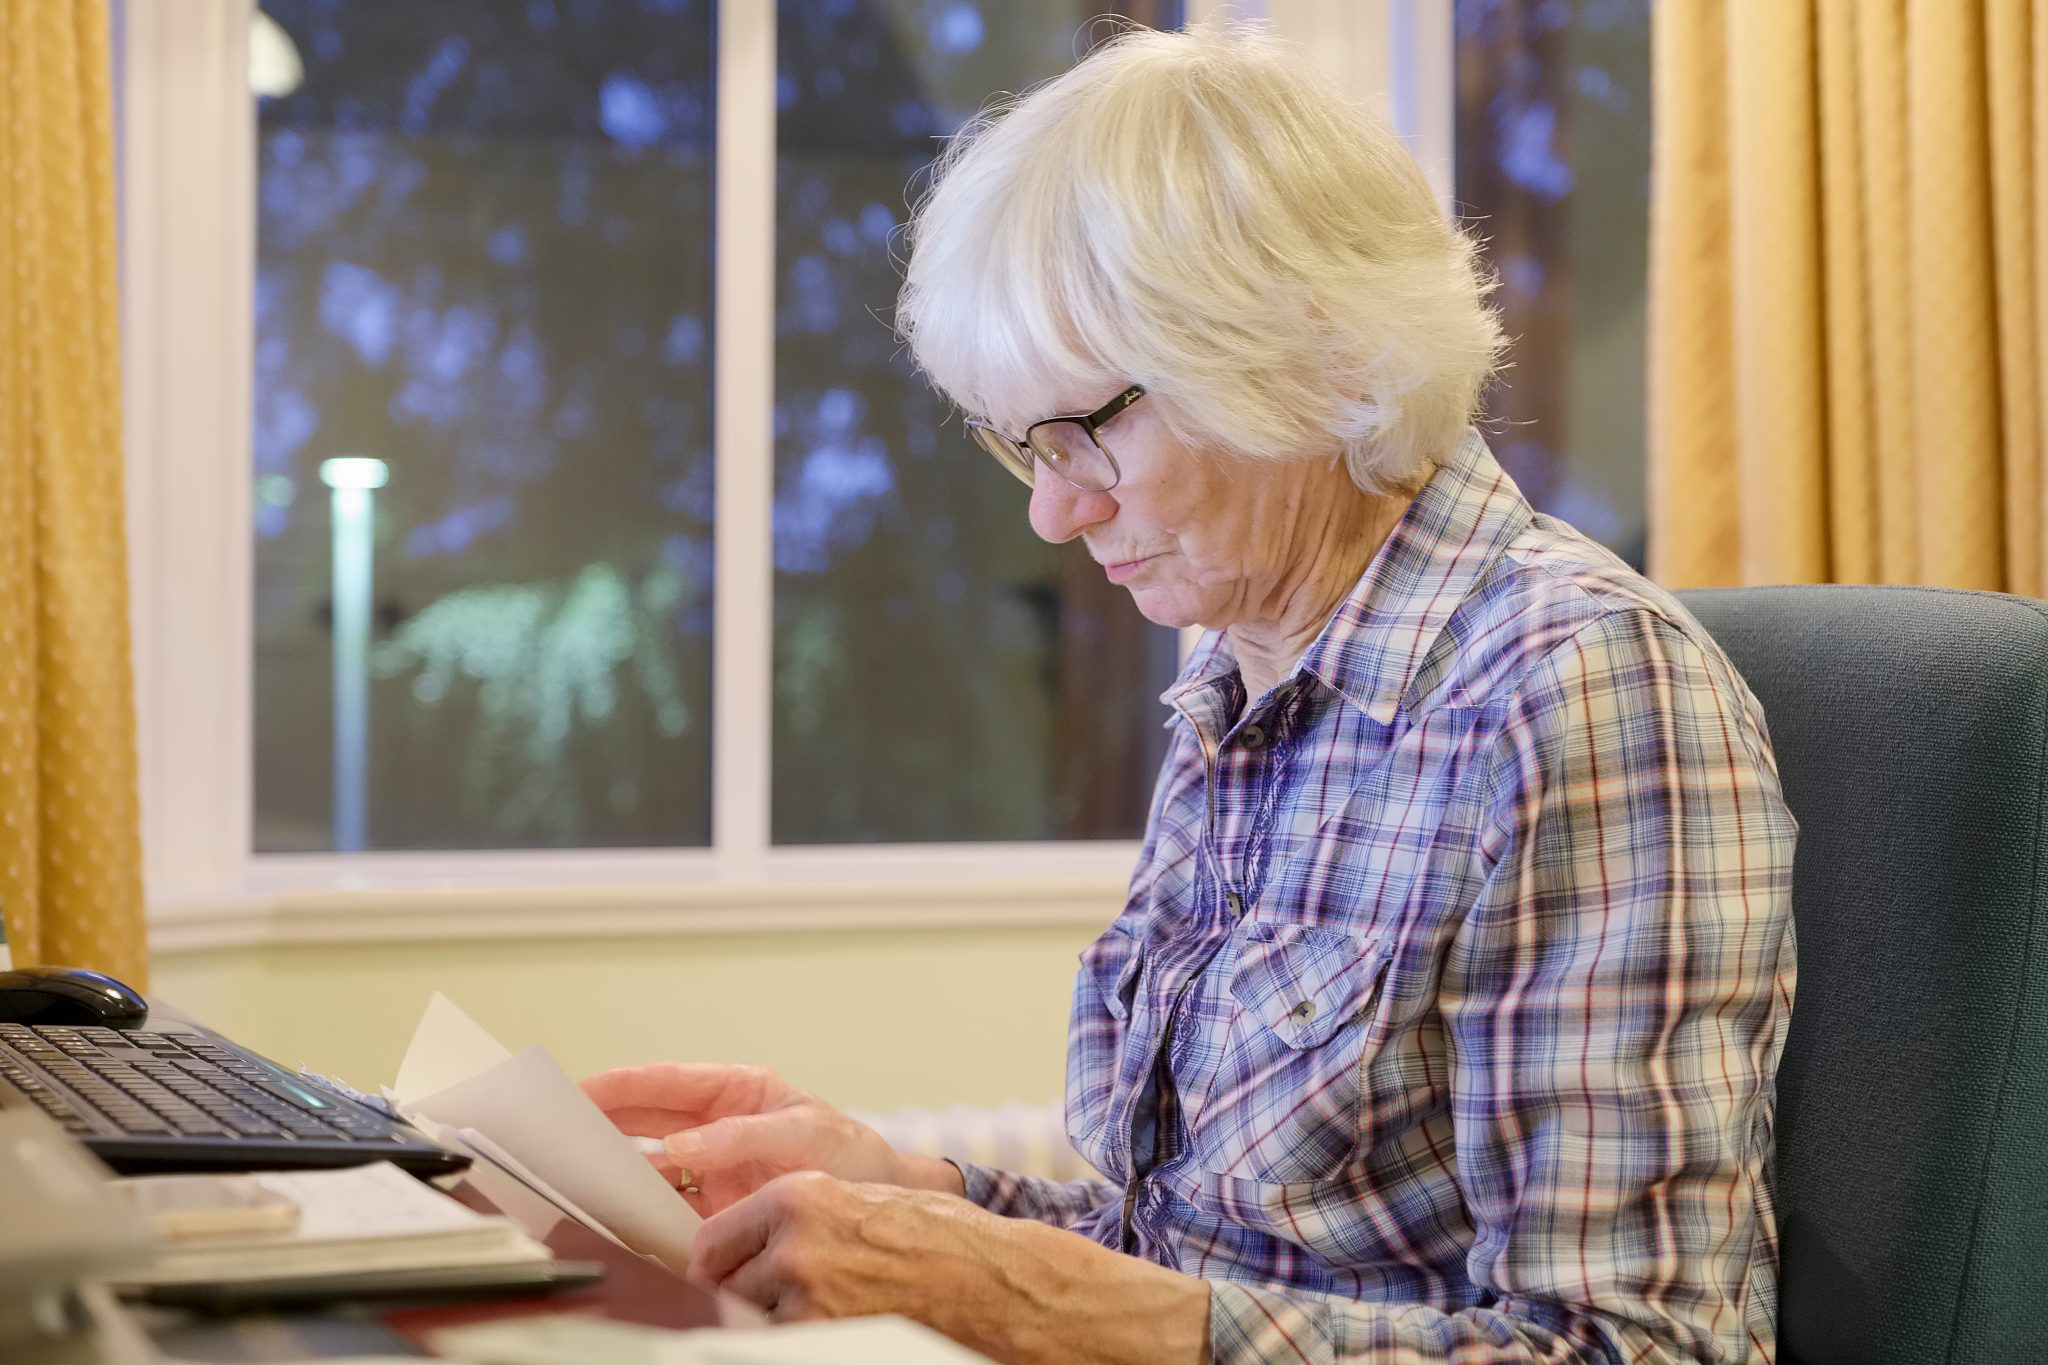 Older adults are prime targets for scams and fraud.